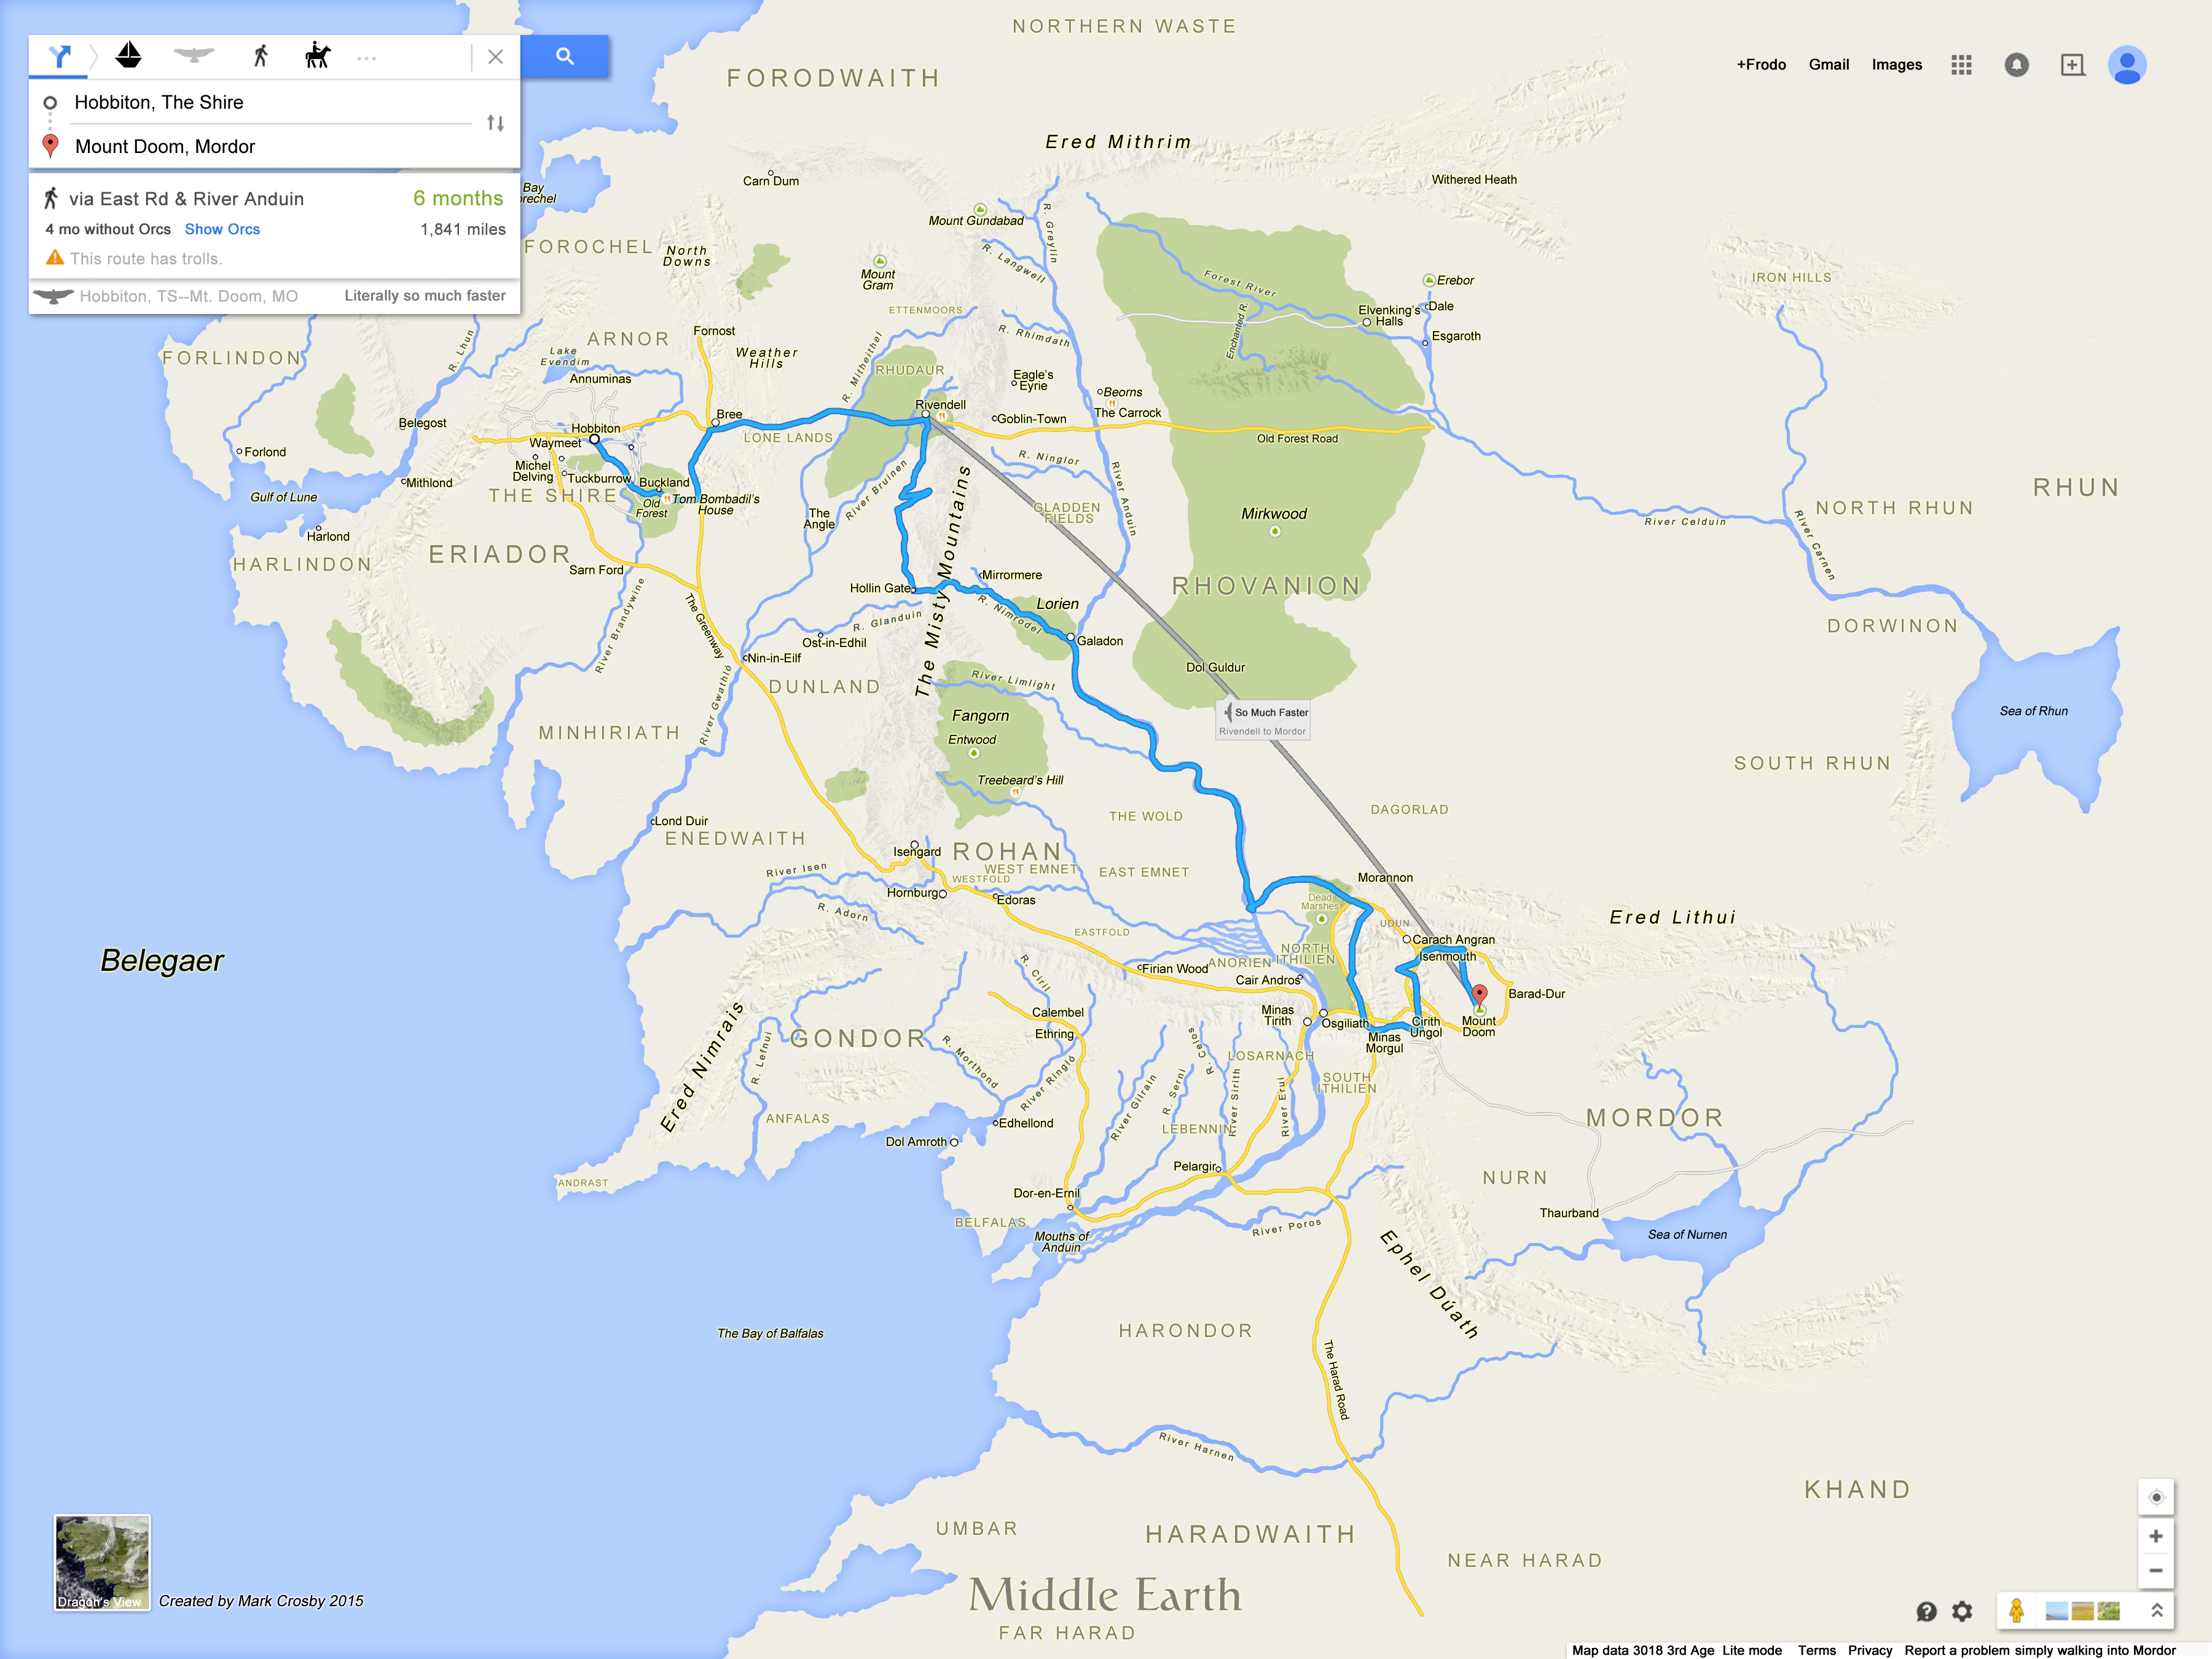 A Google Maps-Style Mockup Of Middle-Earth From Lord Of The Rings - Google Maps Texas Directions